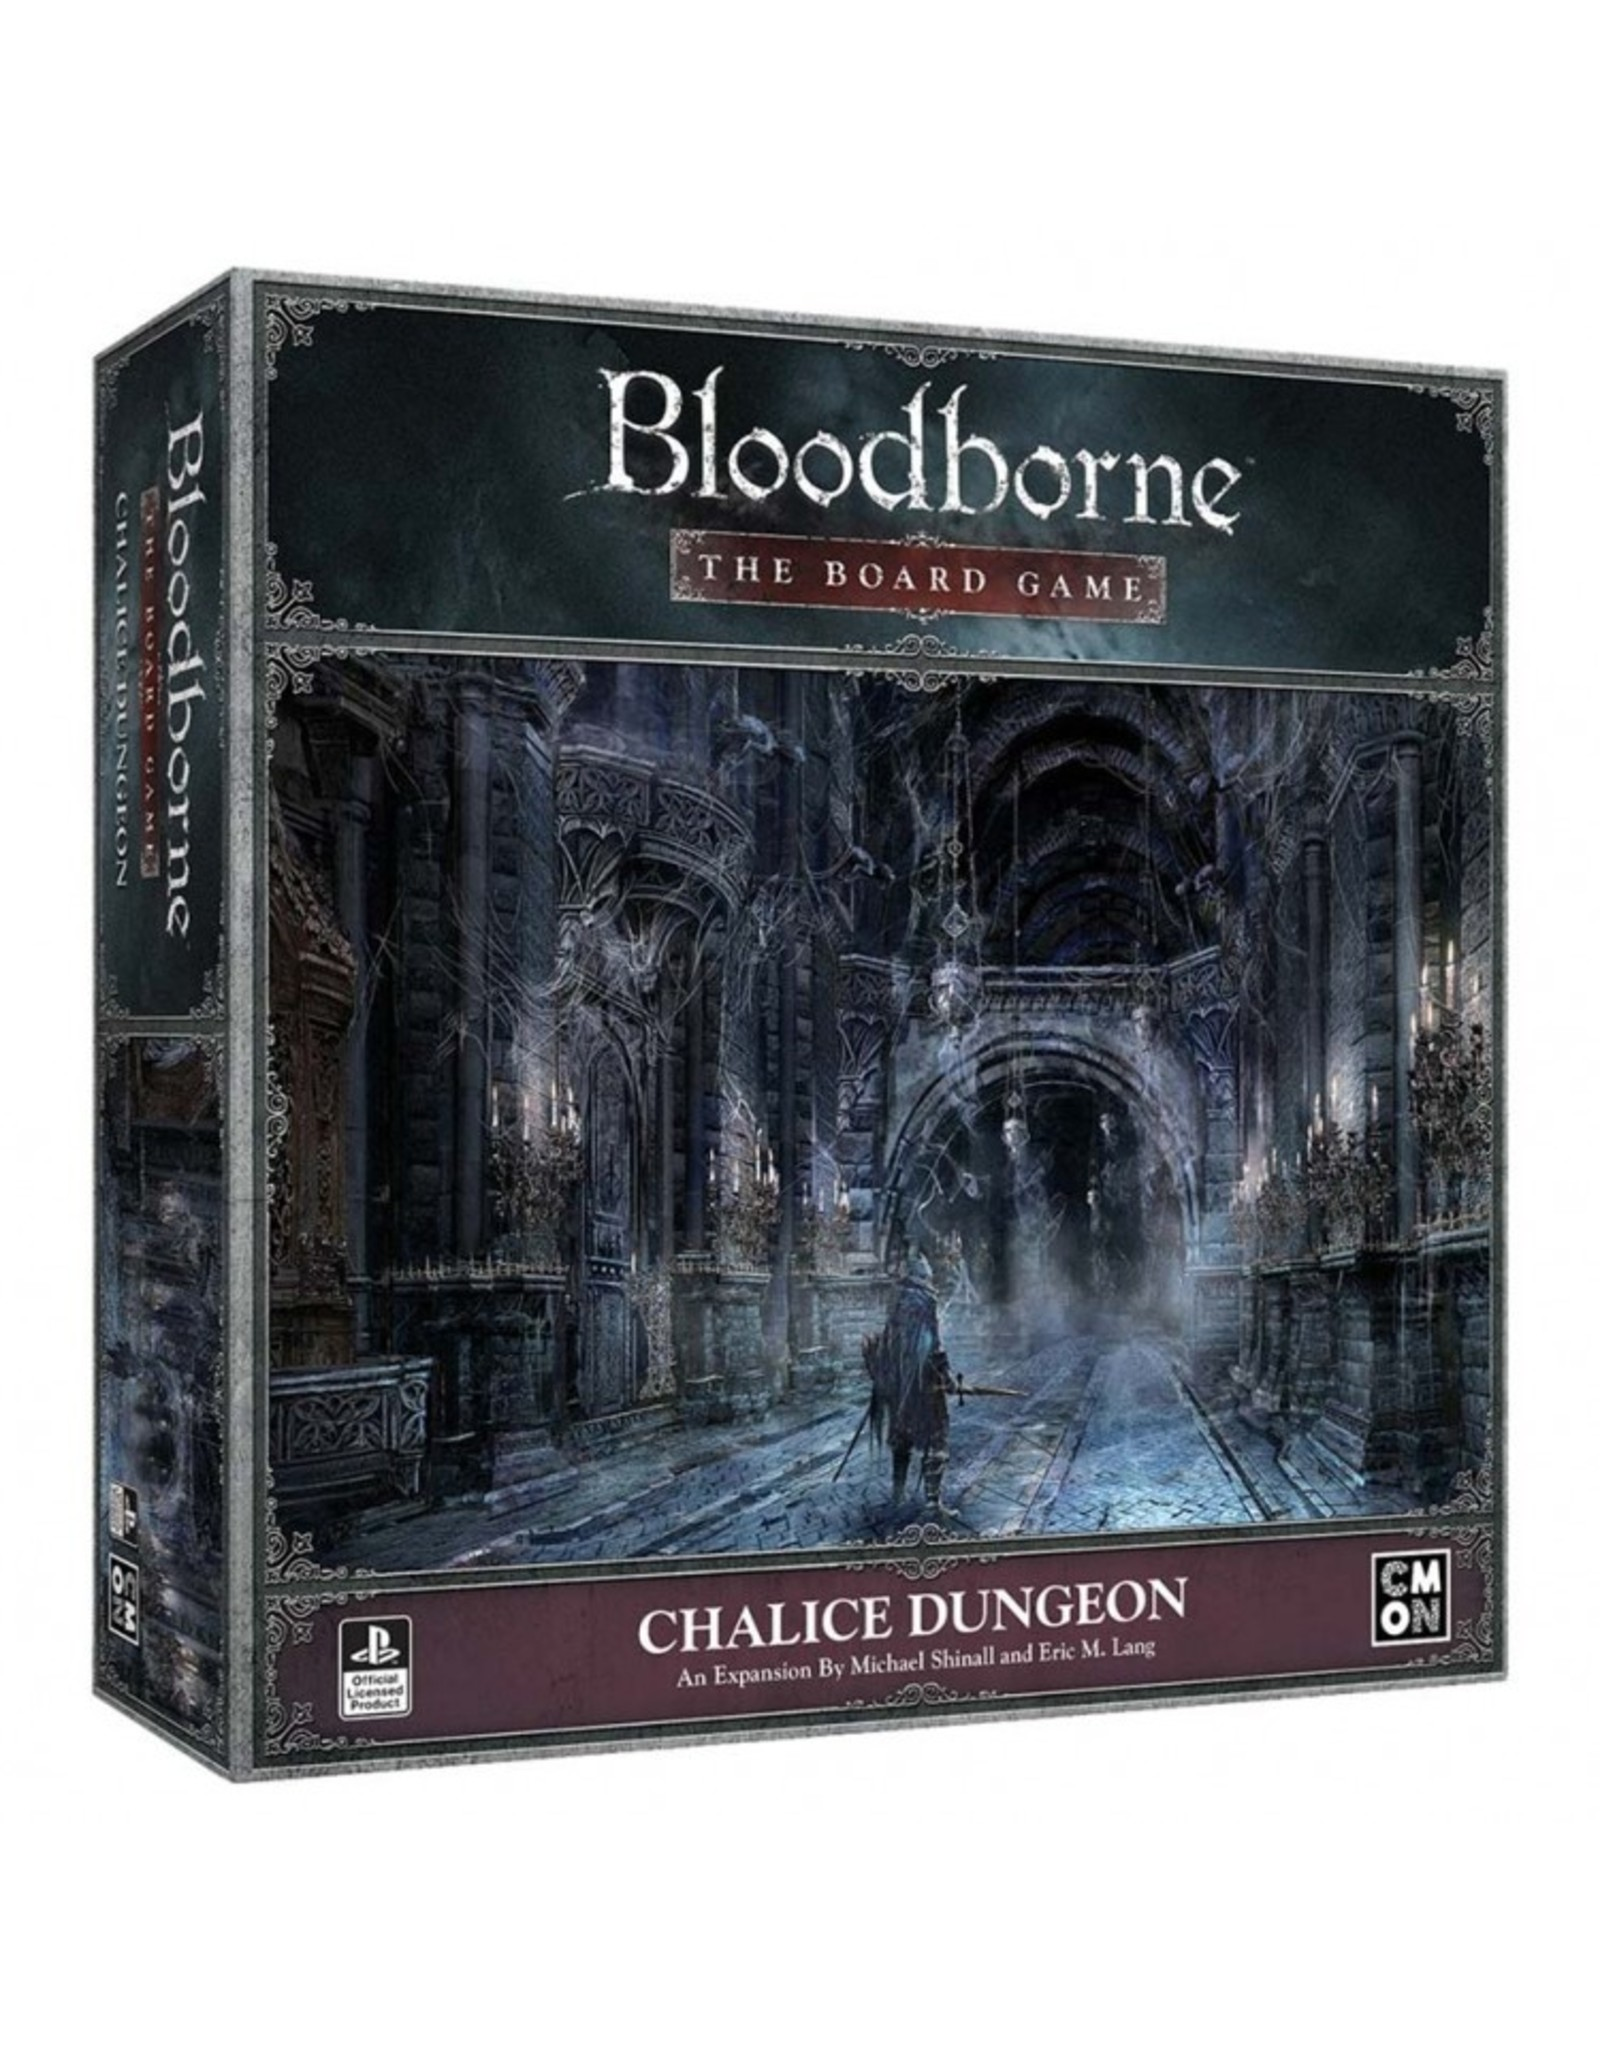 Cool Mini or Not Bloodborne: Chalice Dungeon